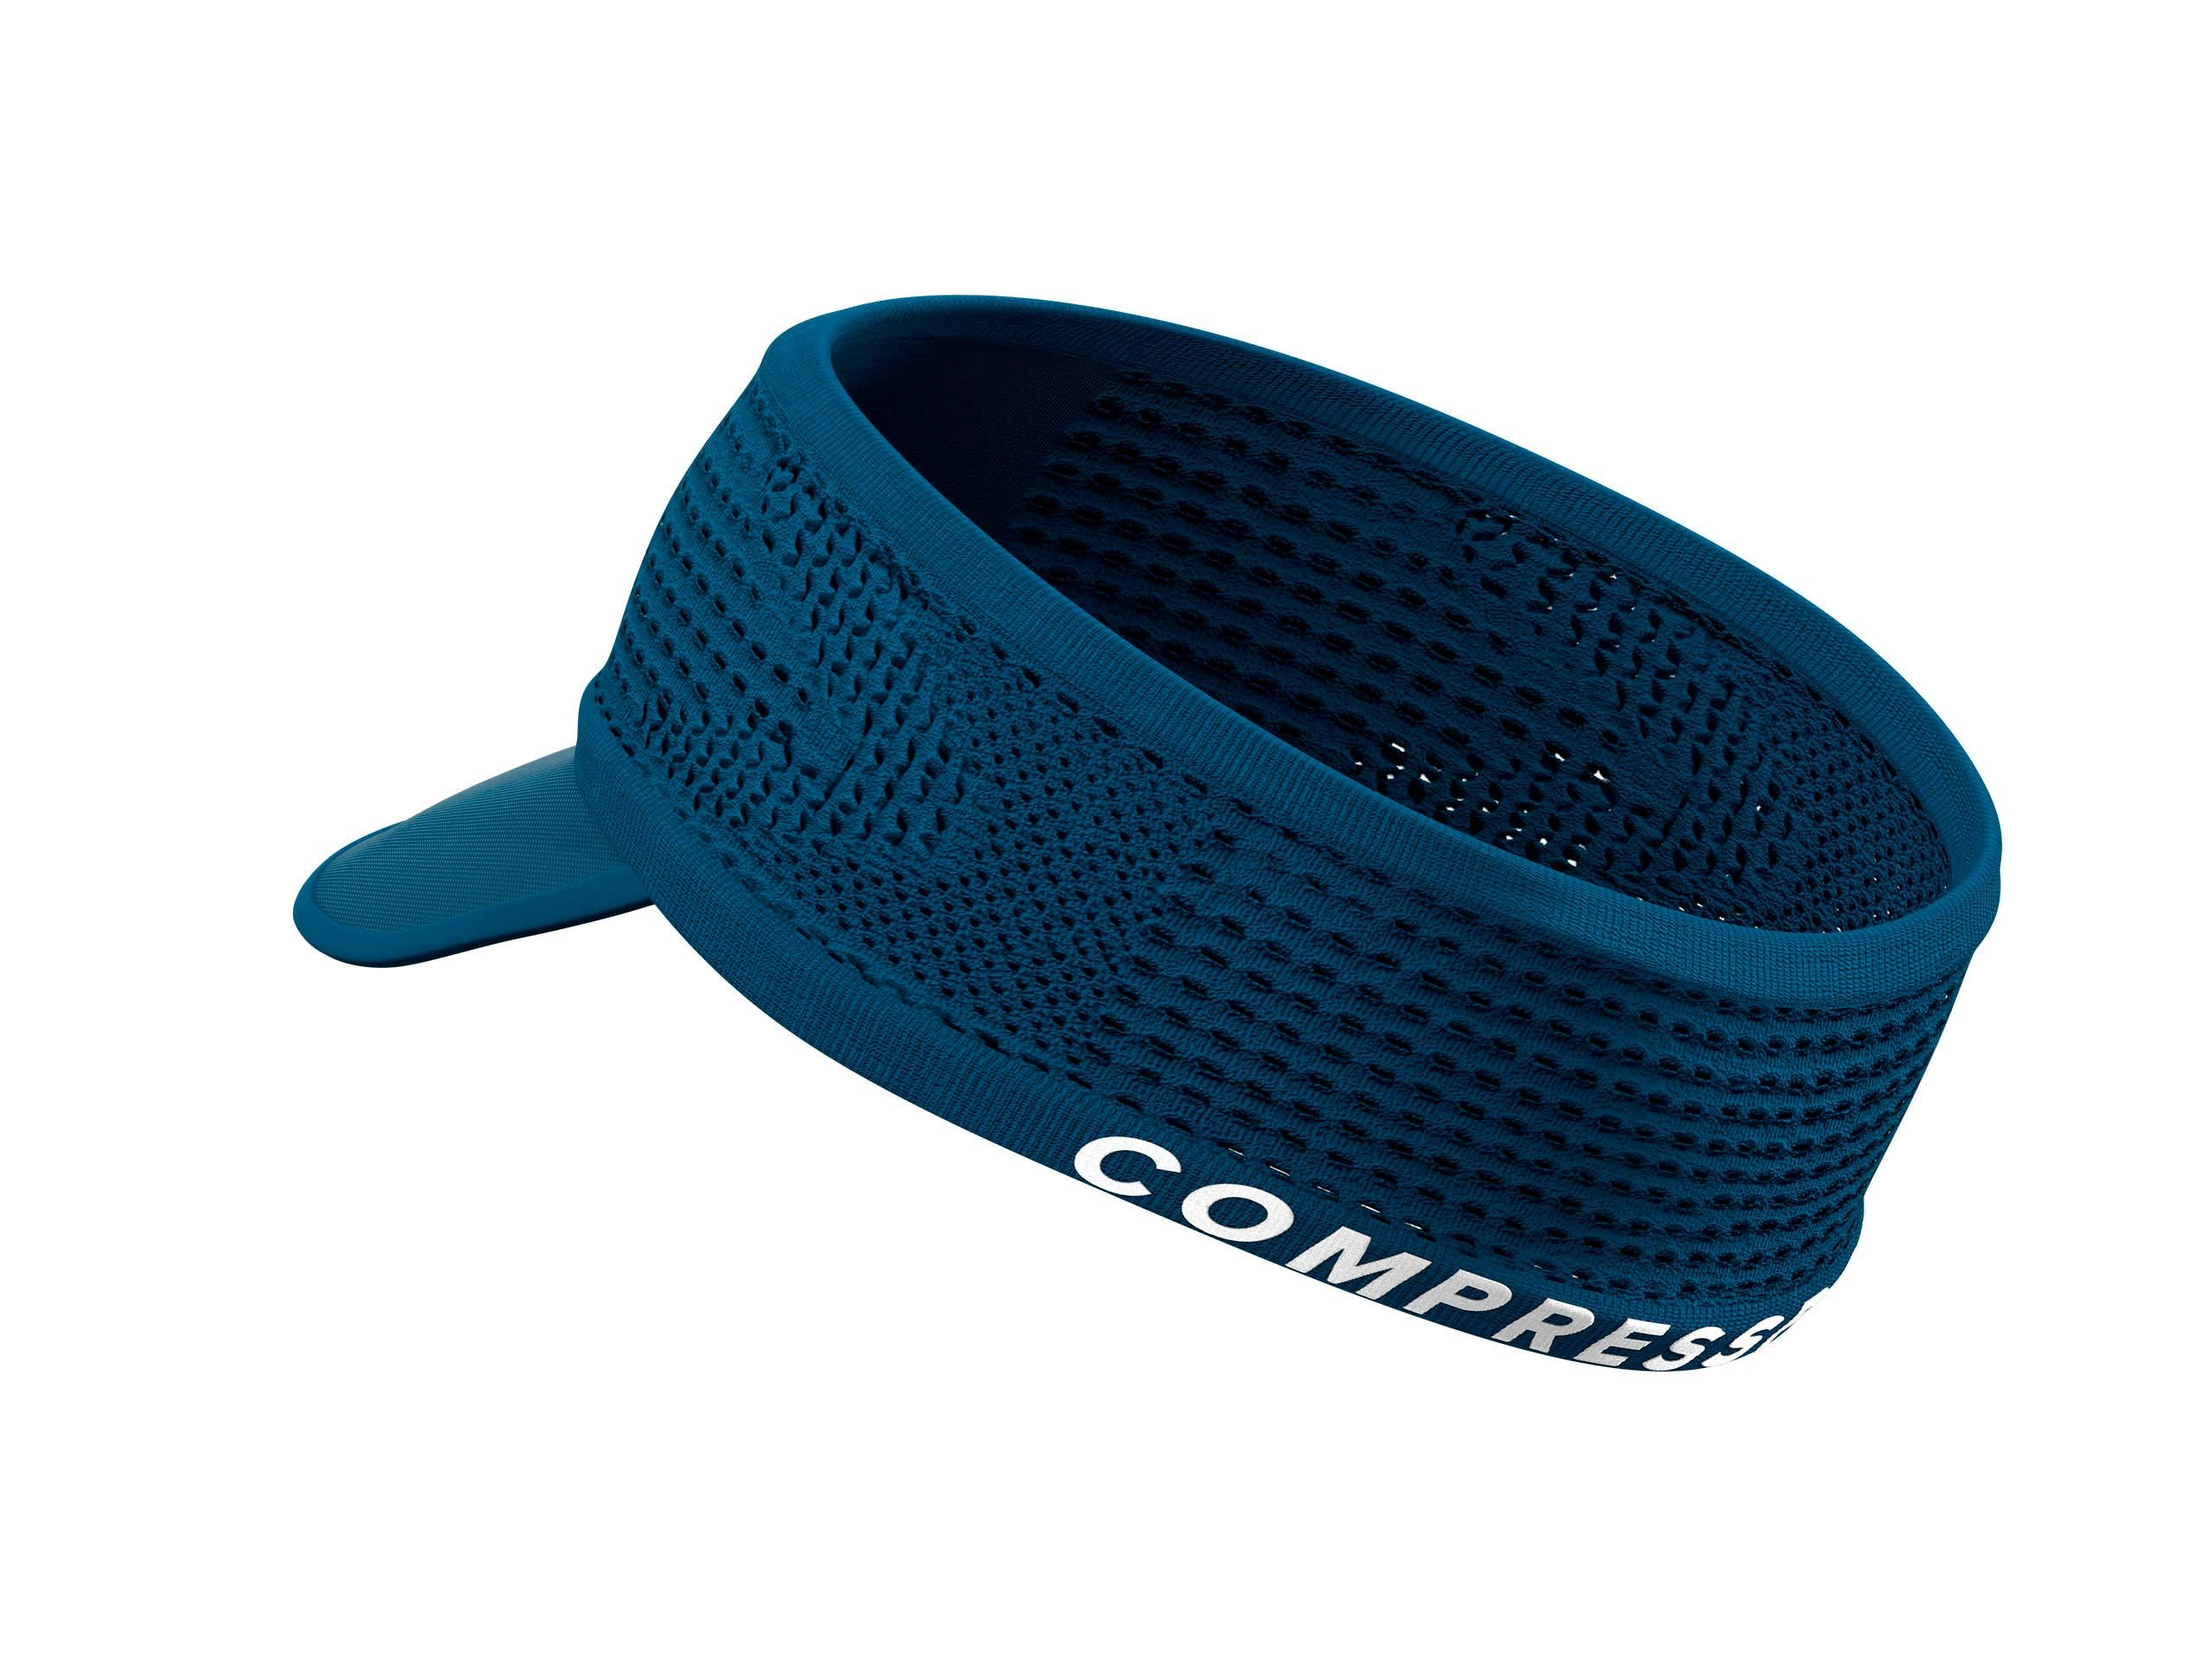 Spiderweb Headband On/Off - Bleue